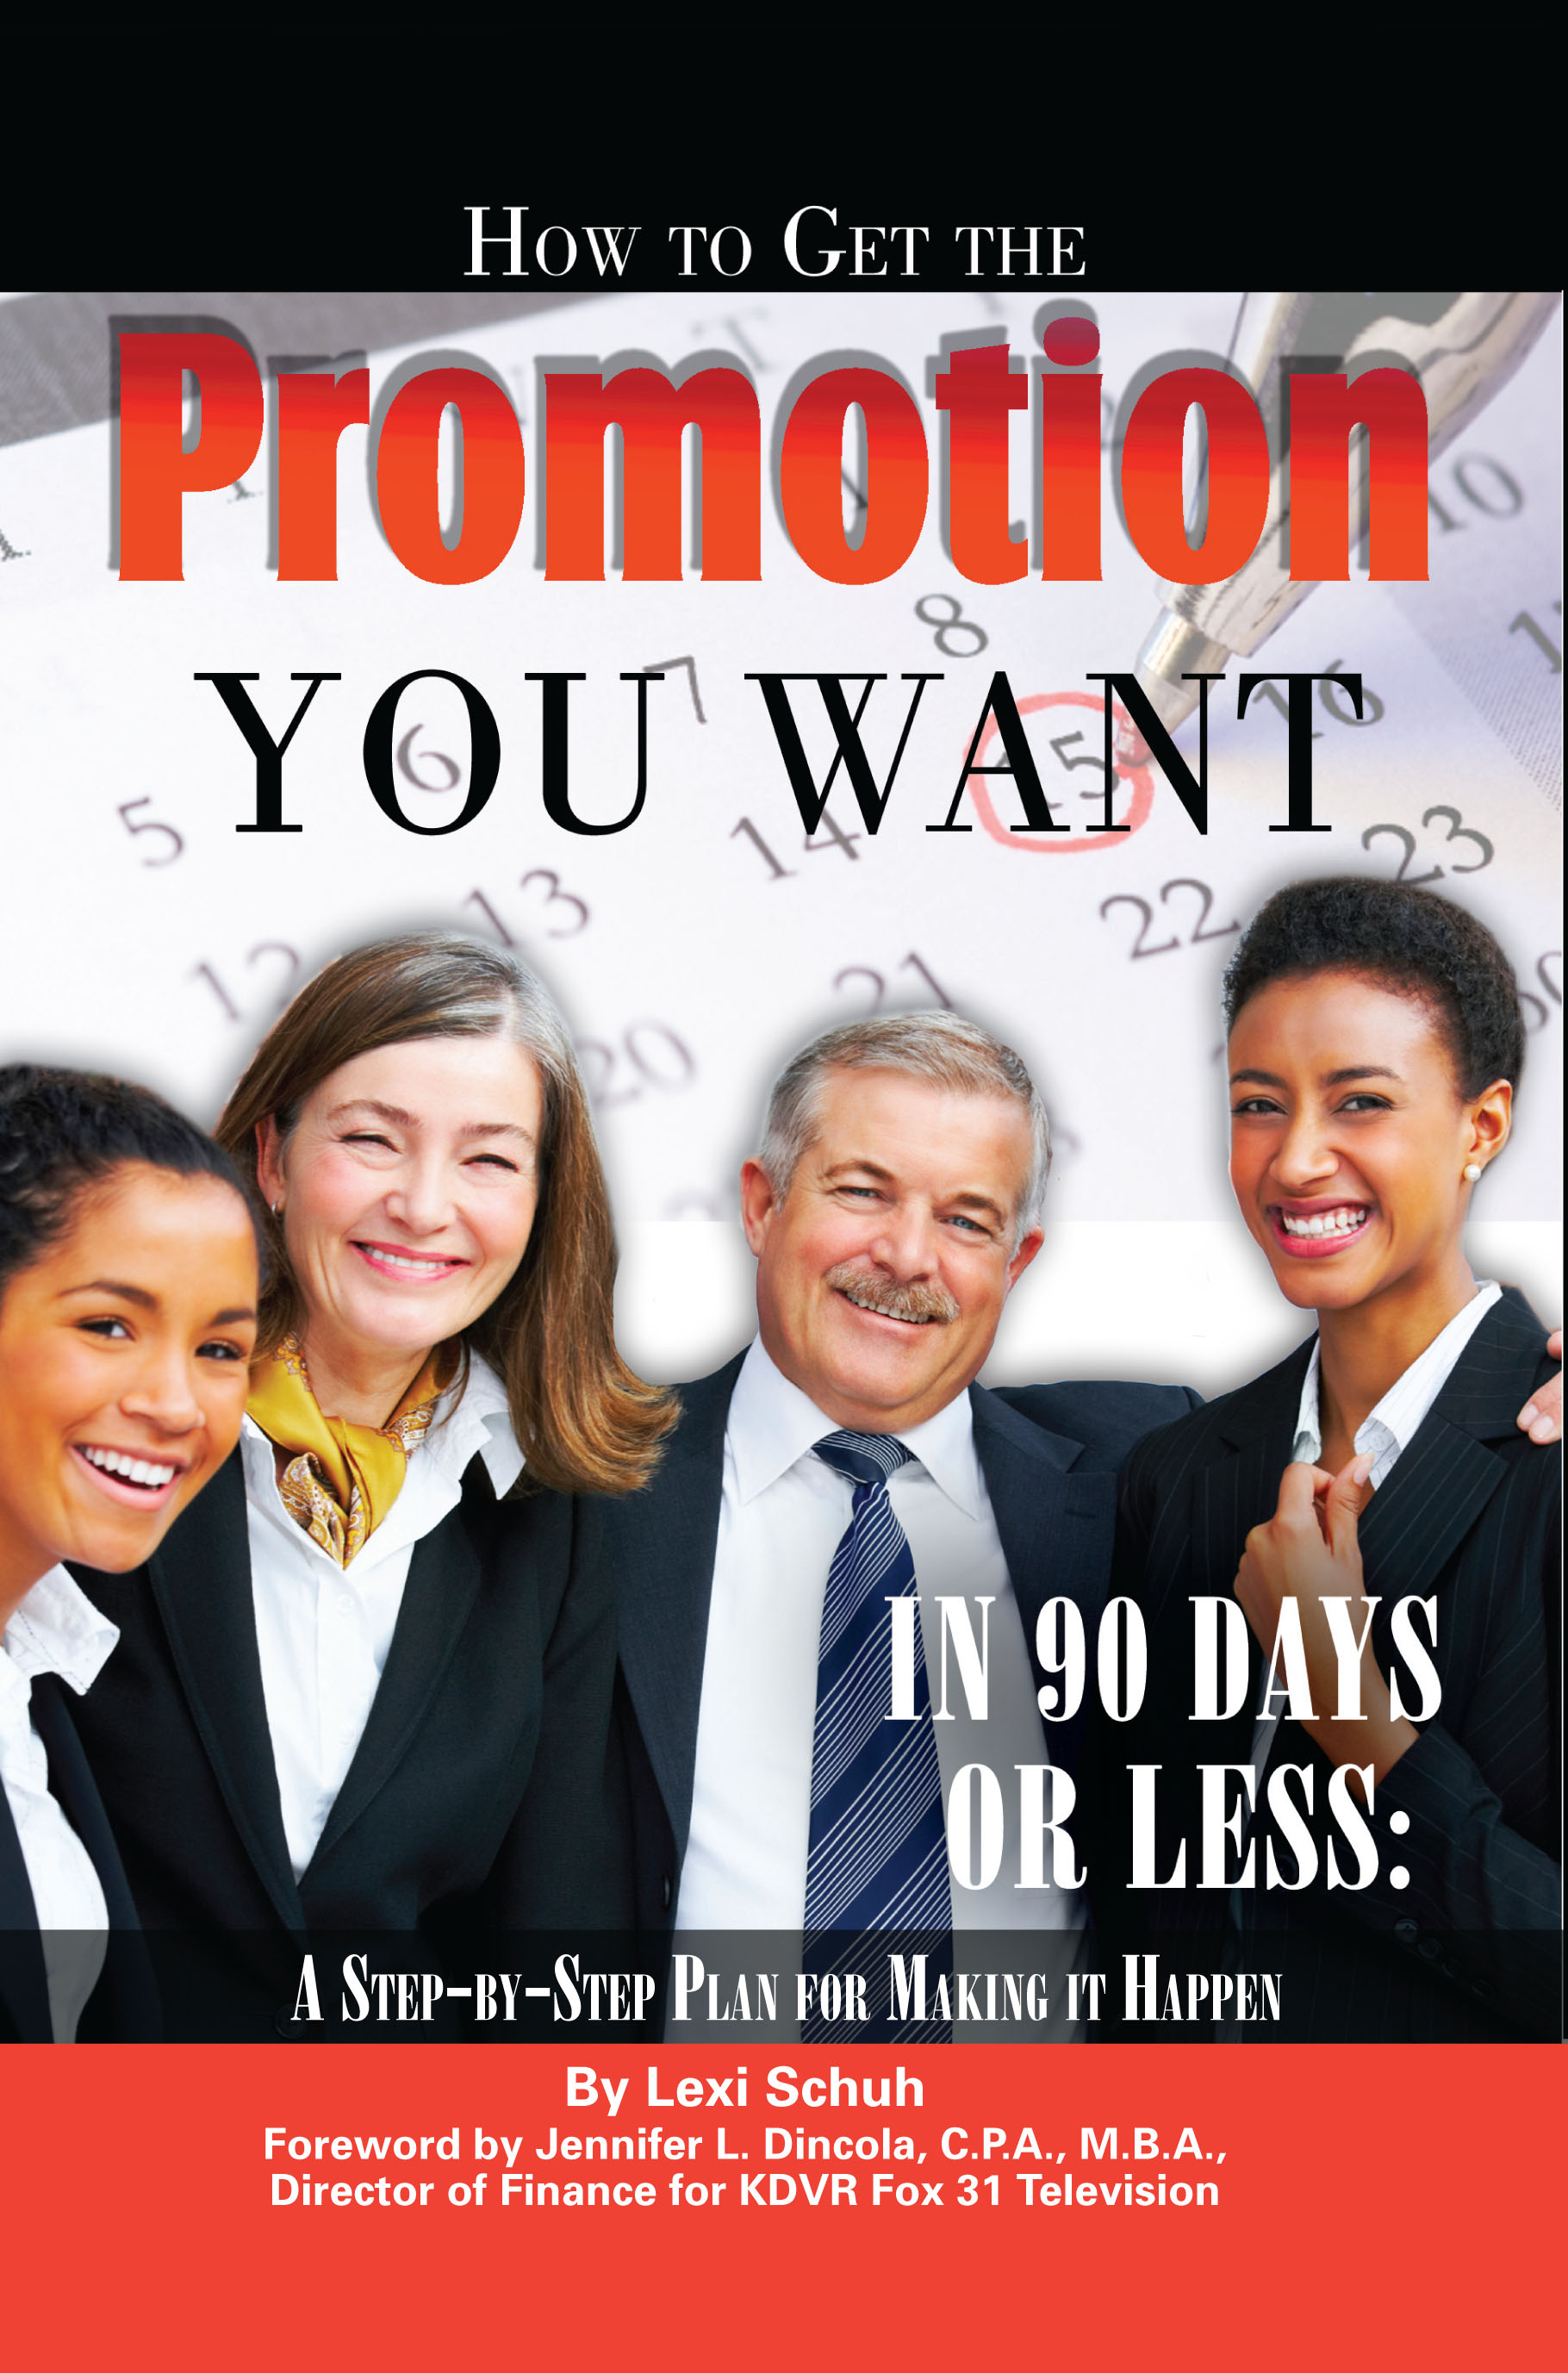 How to Get the Promotion You Want in 90 Days or Less A Step-by-Step Plan for Making it Happen